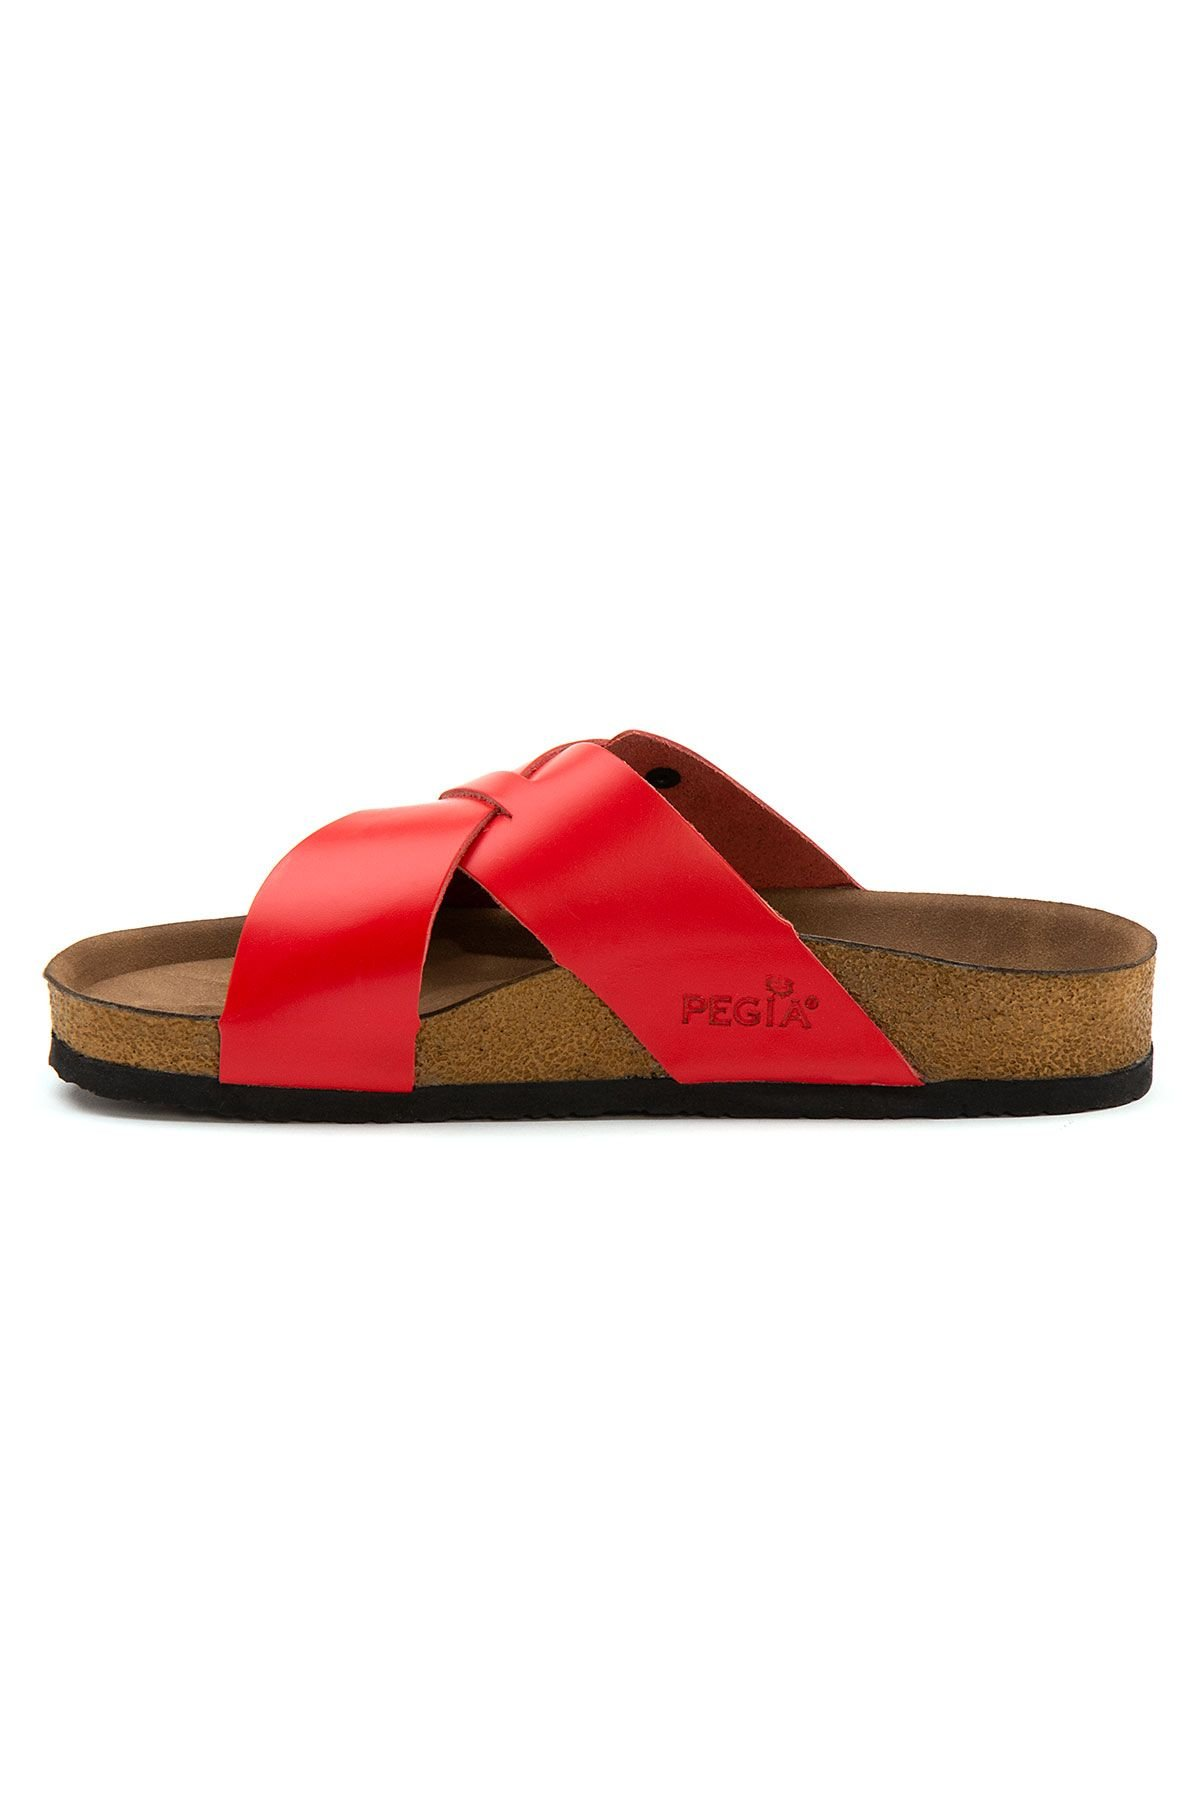 Pegia Women's Leather Strap Slippers 215524 Red